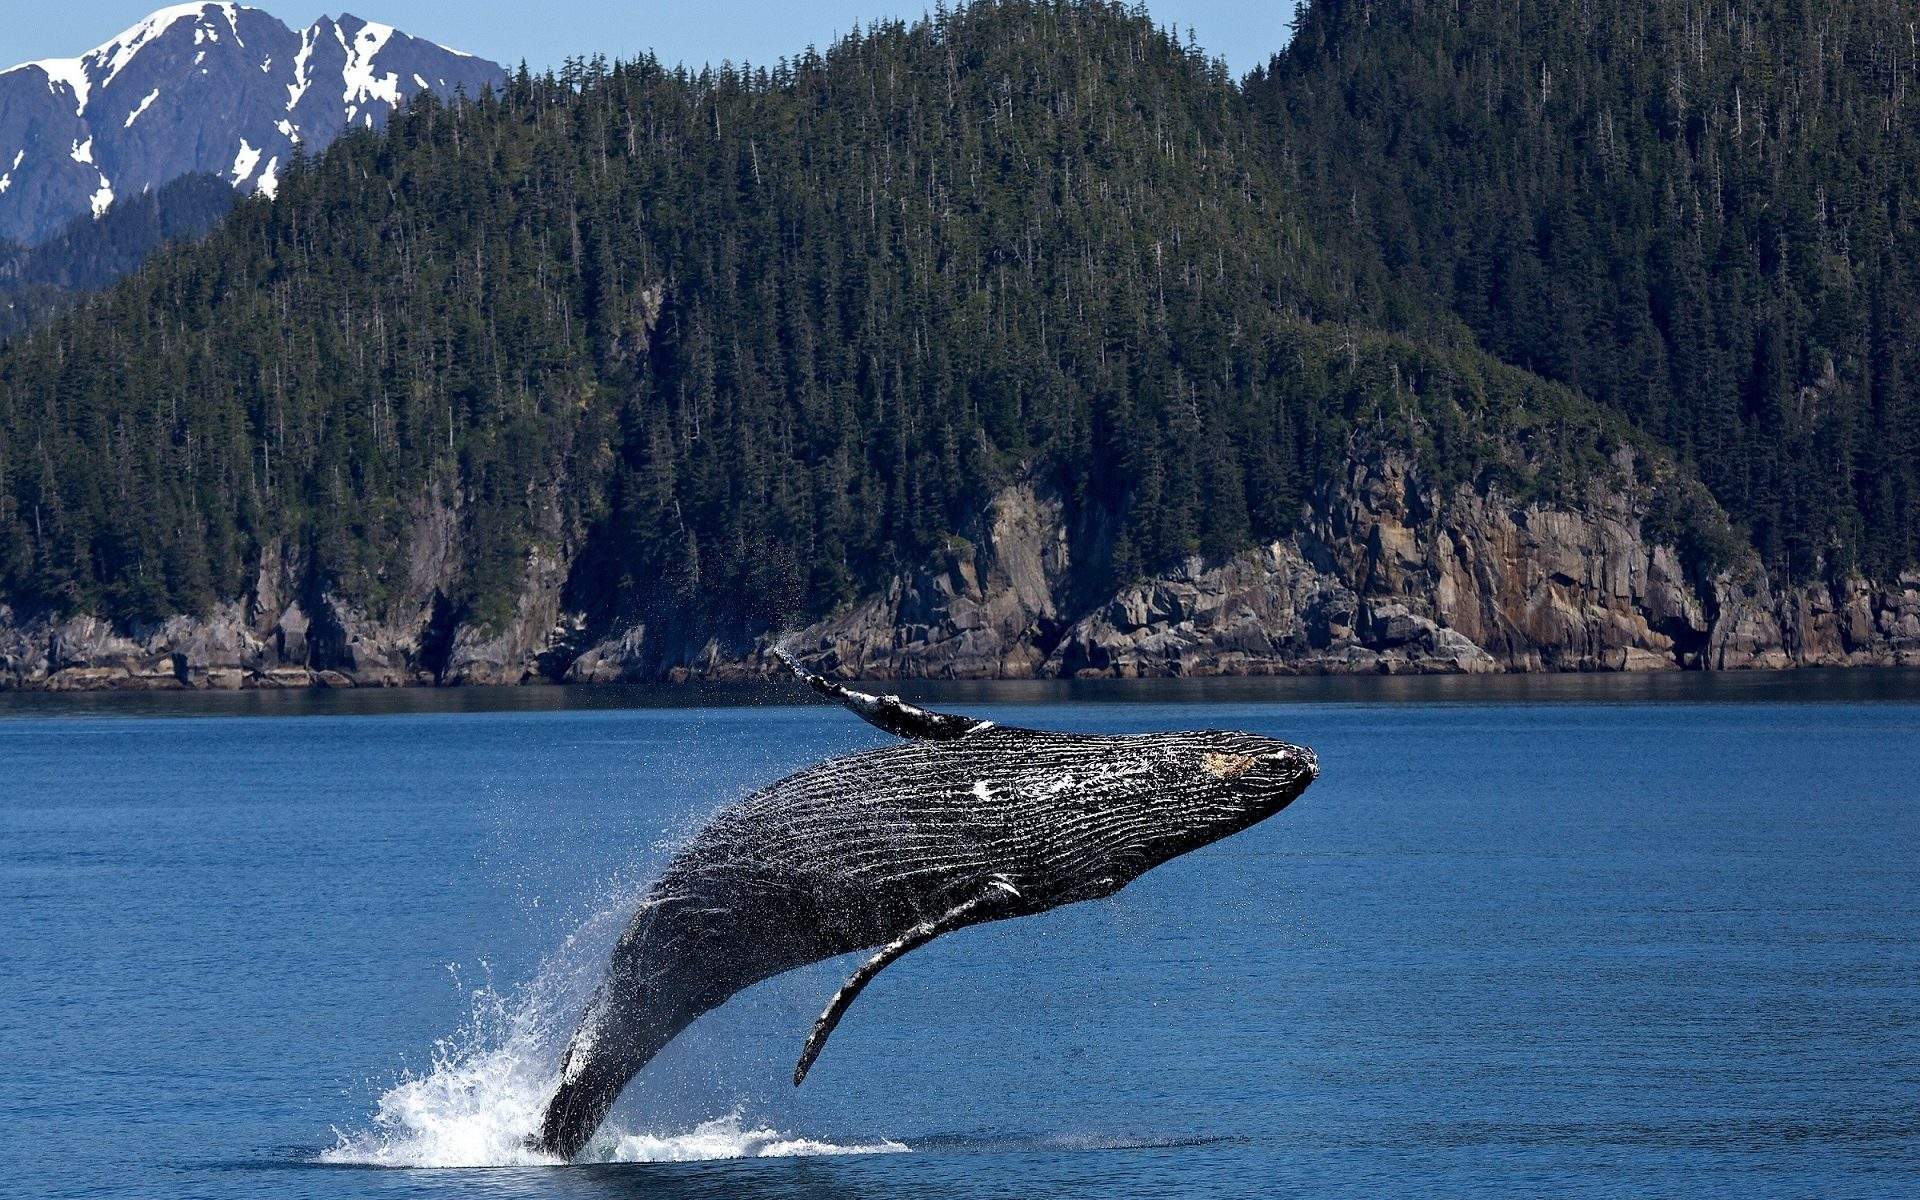 Humpback Whale Wallpaper Background Hd Wallpaper Background